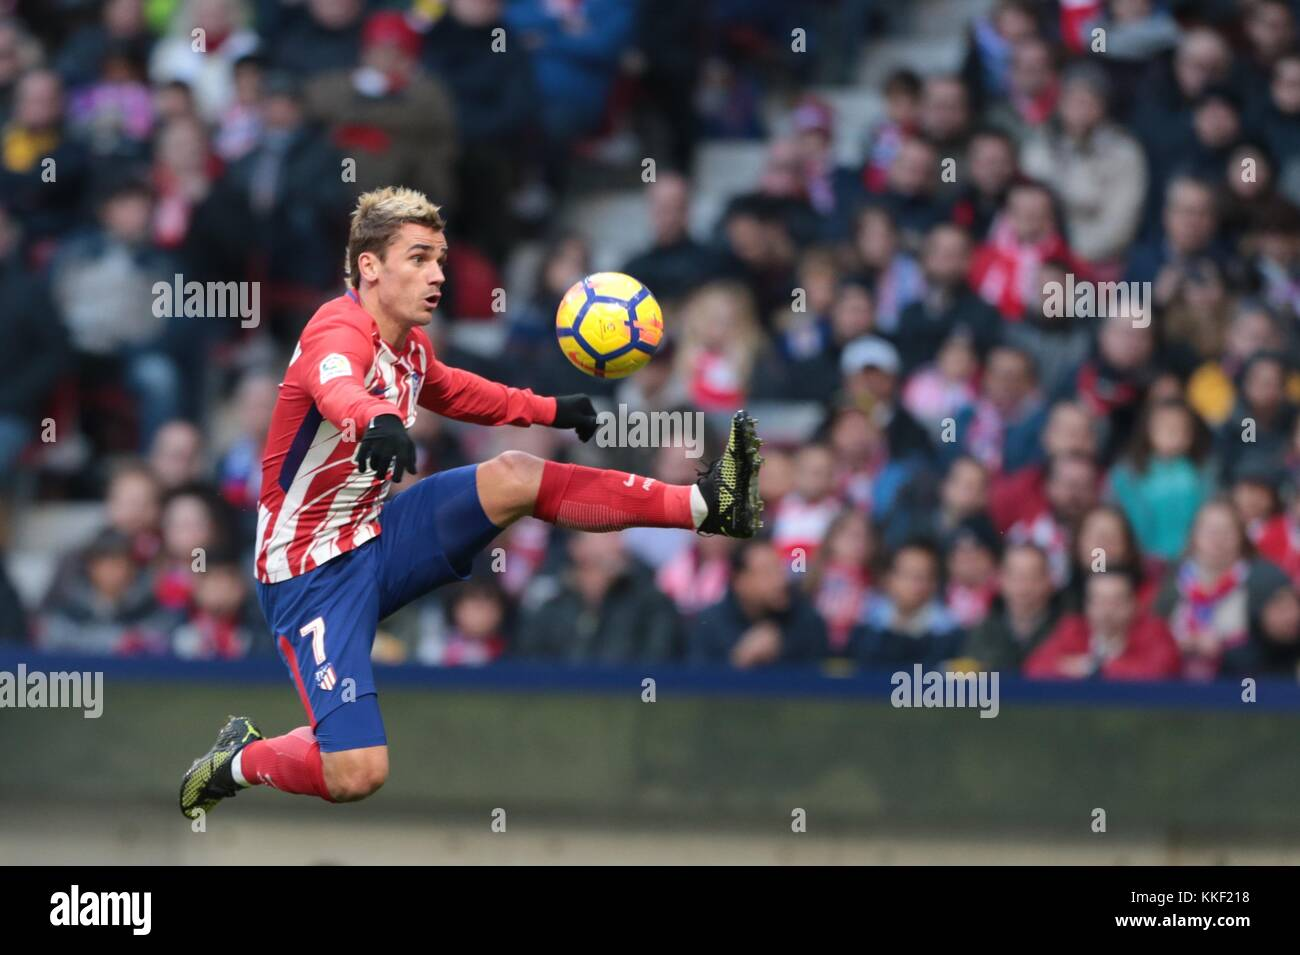 Madrid, Spain. 2nd Dec, 2017. Atletico de Madrid's Griezmann competes during a Spanish League match between - Stock Image